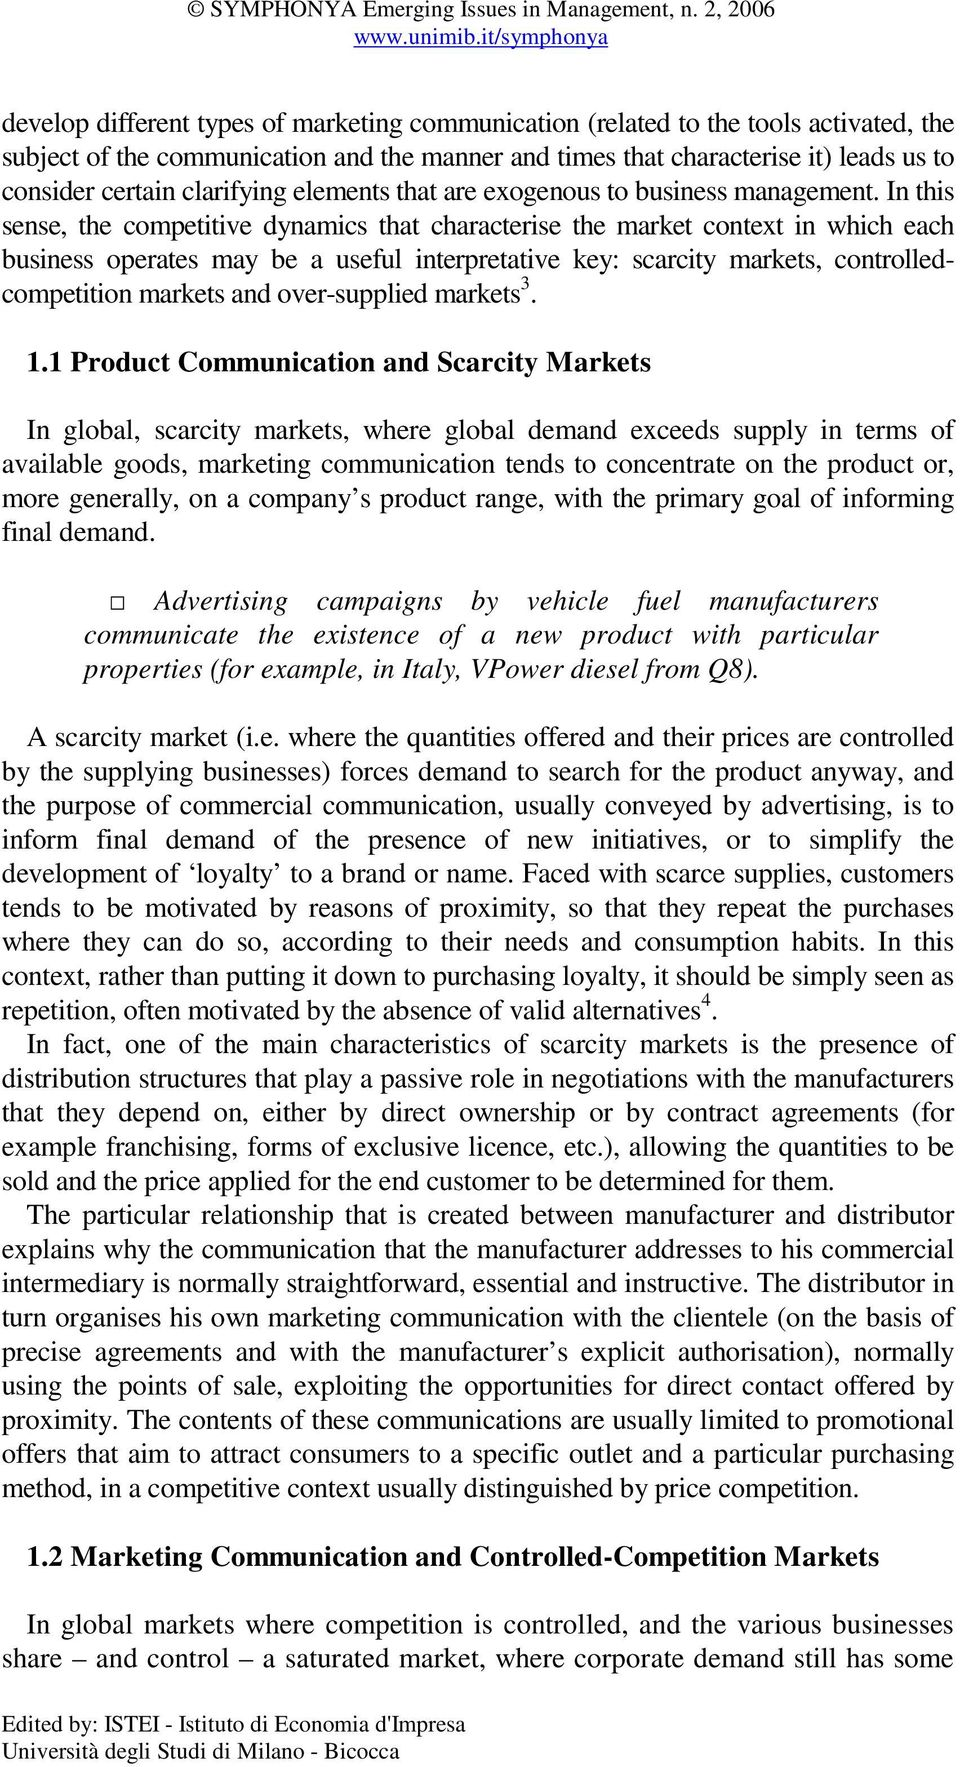 In this sense, the competitive dynamics that characterise the market context in which each business operates may be a useful interpretative key: scarcity markets, controlledcompetition markets and